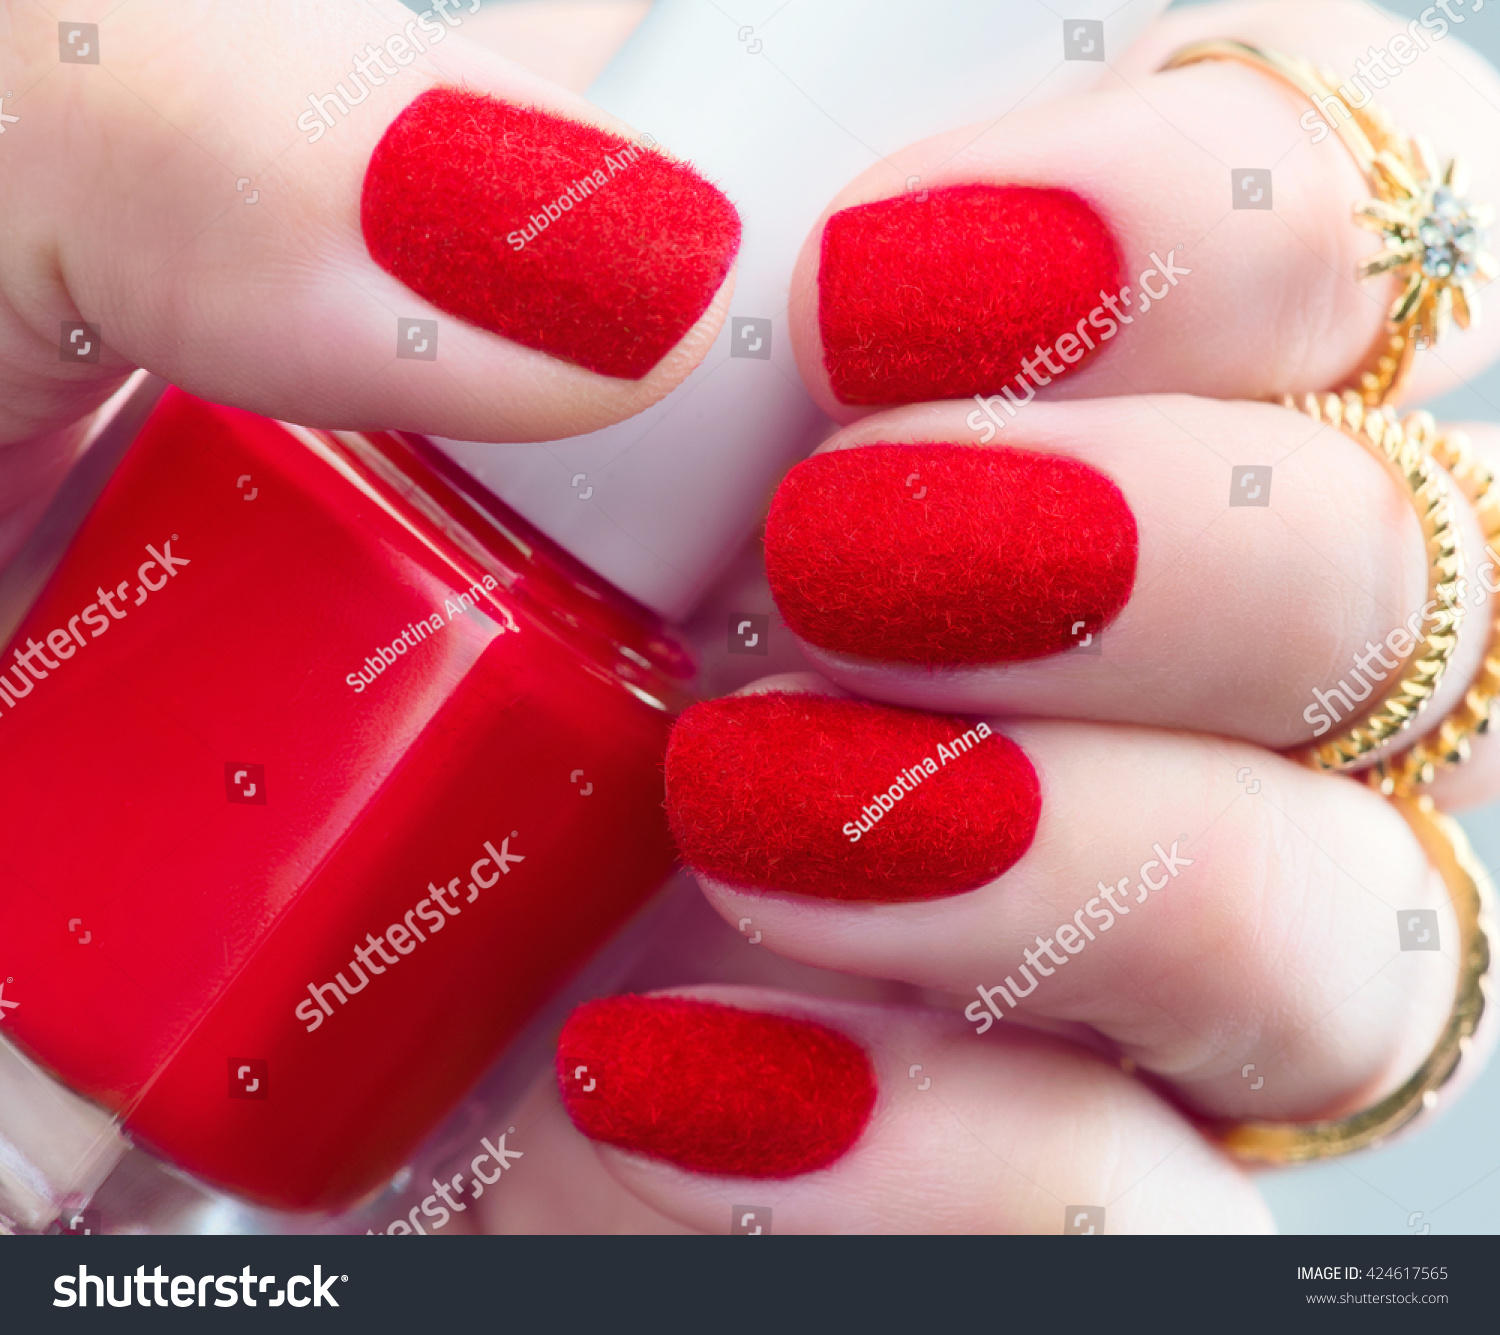 Velvet nails fashion trendy red fluffy stock photo 424617565 velvet nails fashion trendy red fluffy nail art design closeup beauty hands stylish prinsesfo Image collections